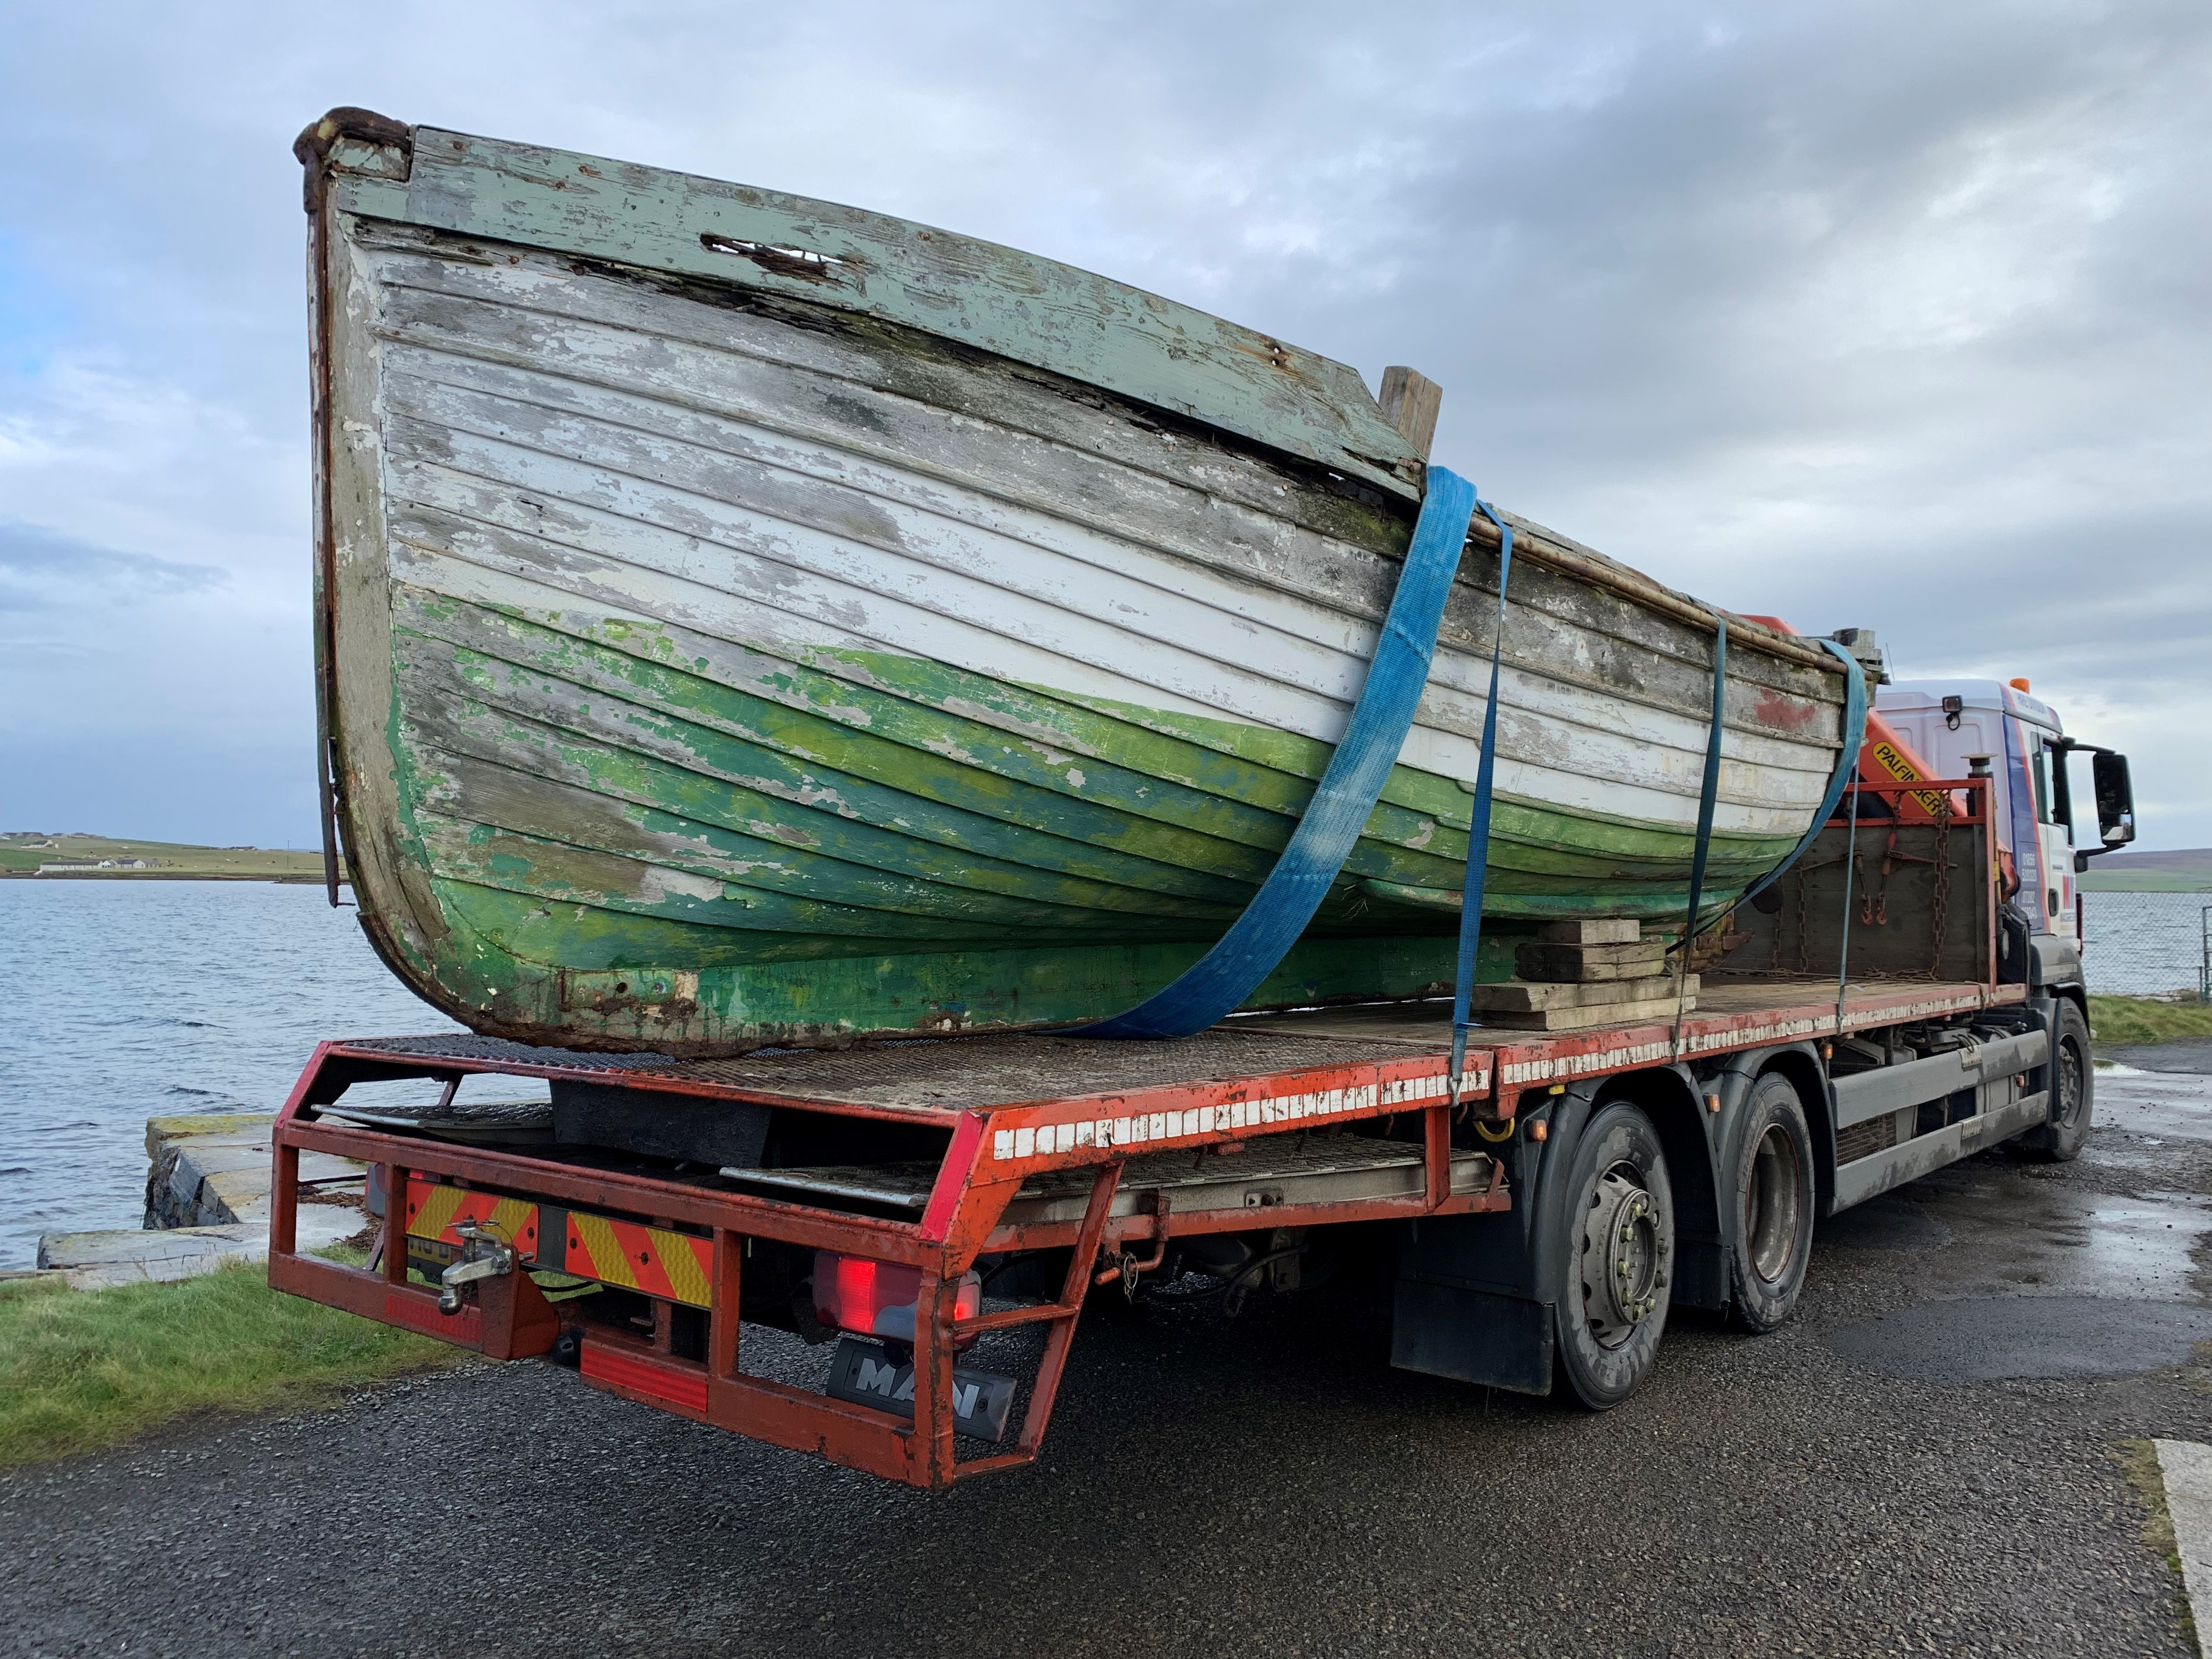 Arne Kjode lifeboat recovered by lorry to dry storage